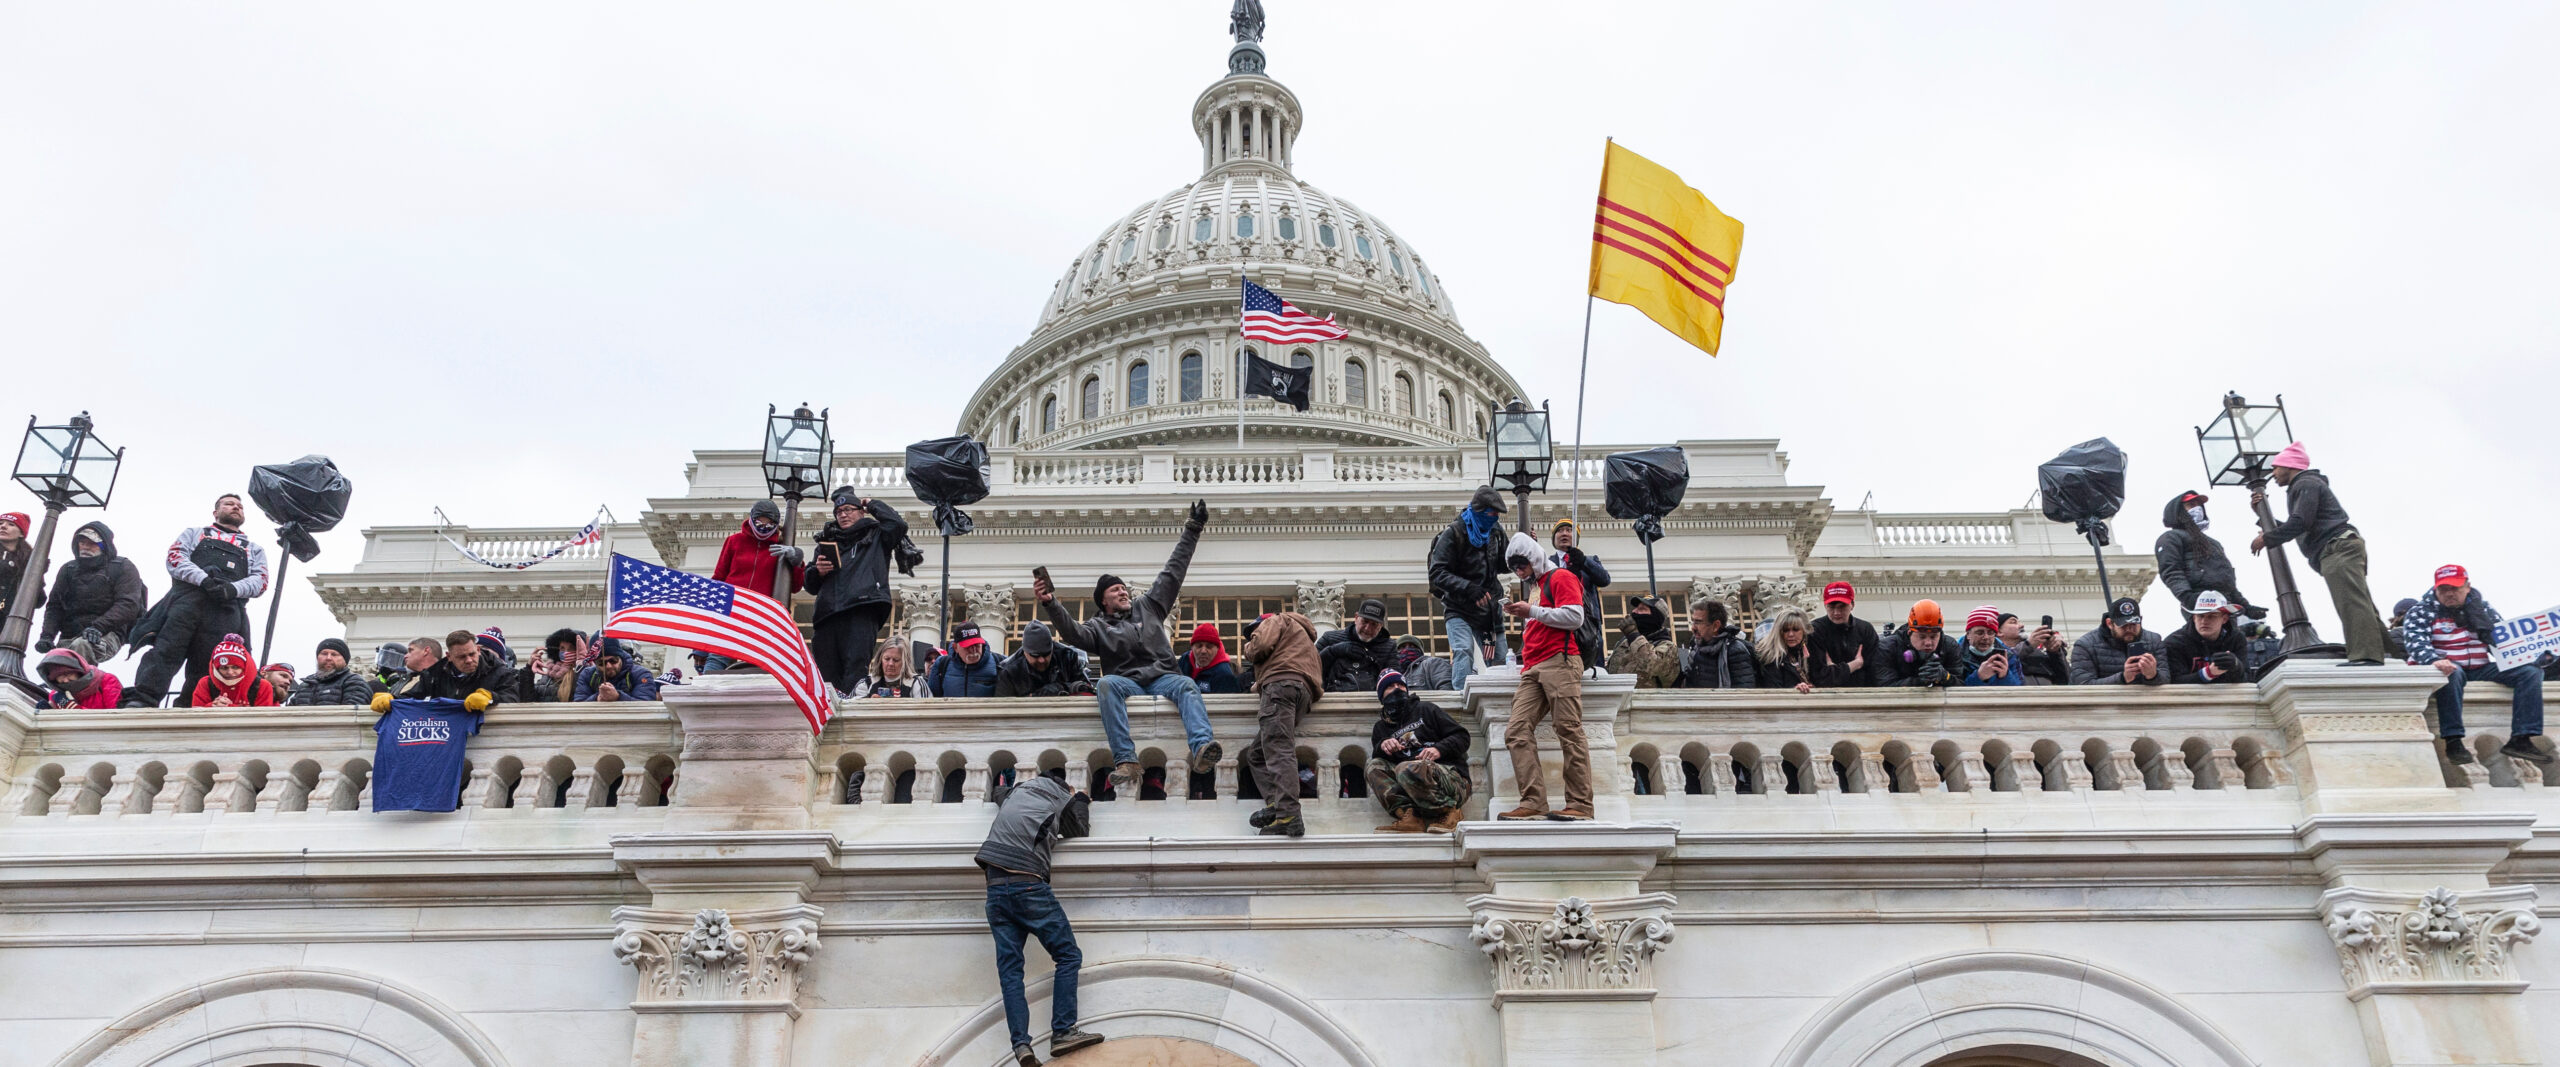 Protesters Climbing On U.S. Capitol